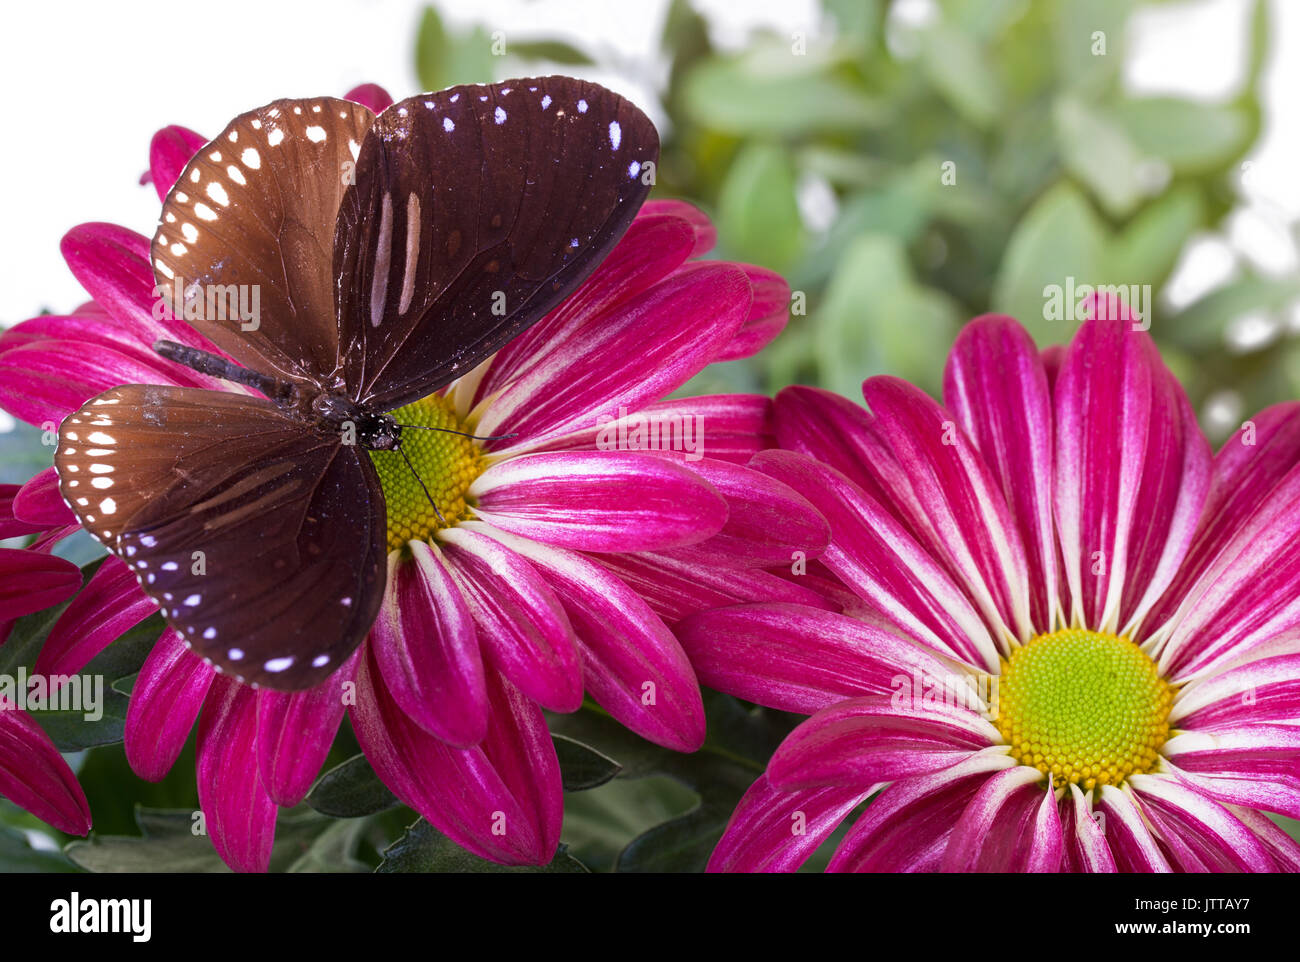 Striped Blue Crow Butterfly (Euploea sylvester harrisii) on Red Mum - Stock Image